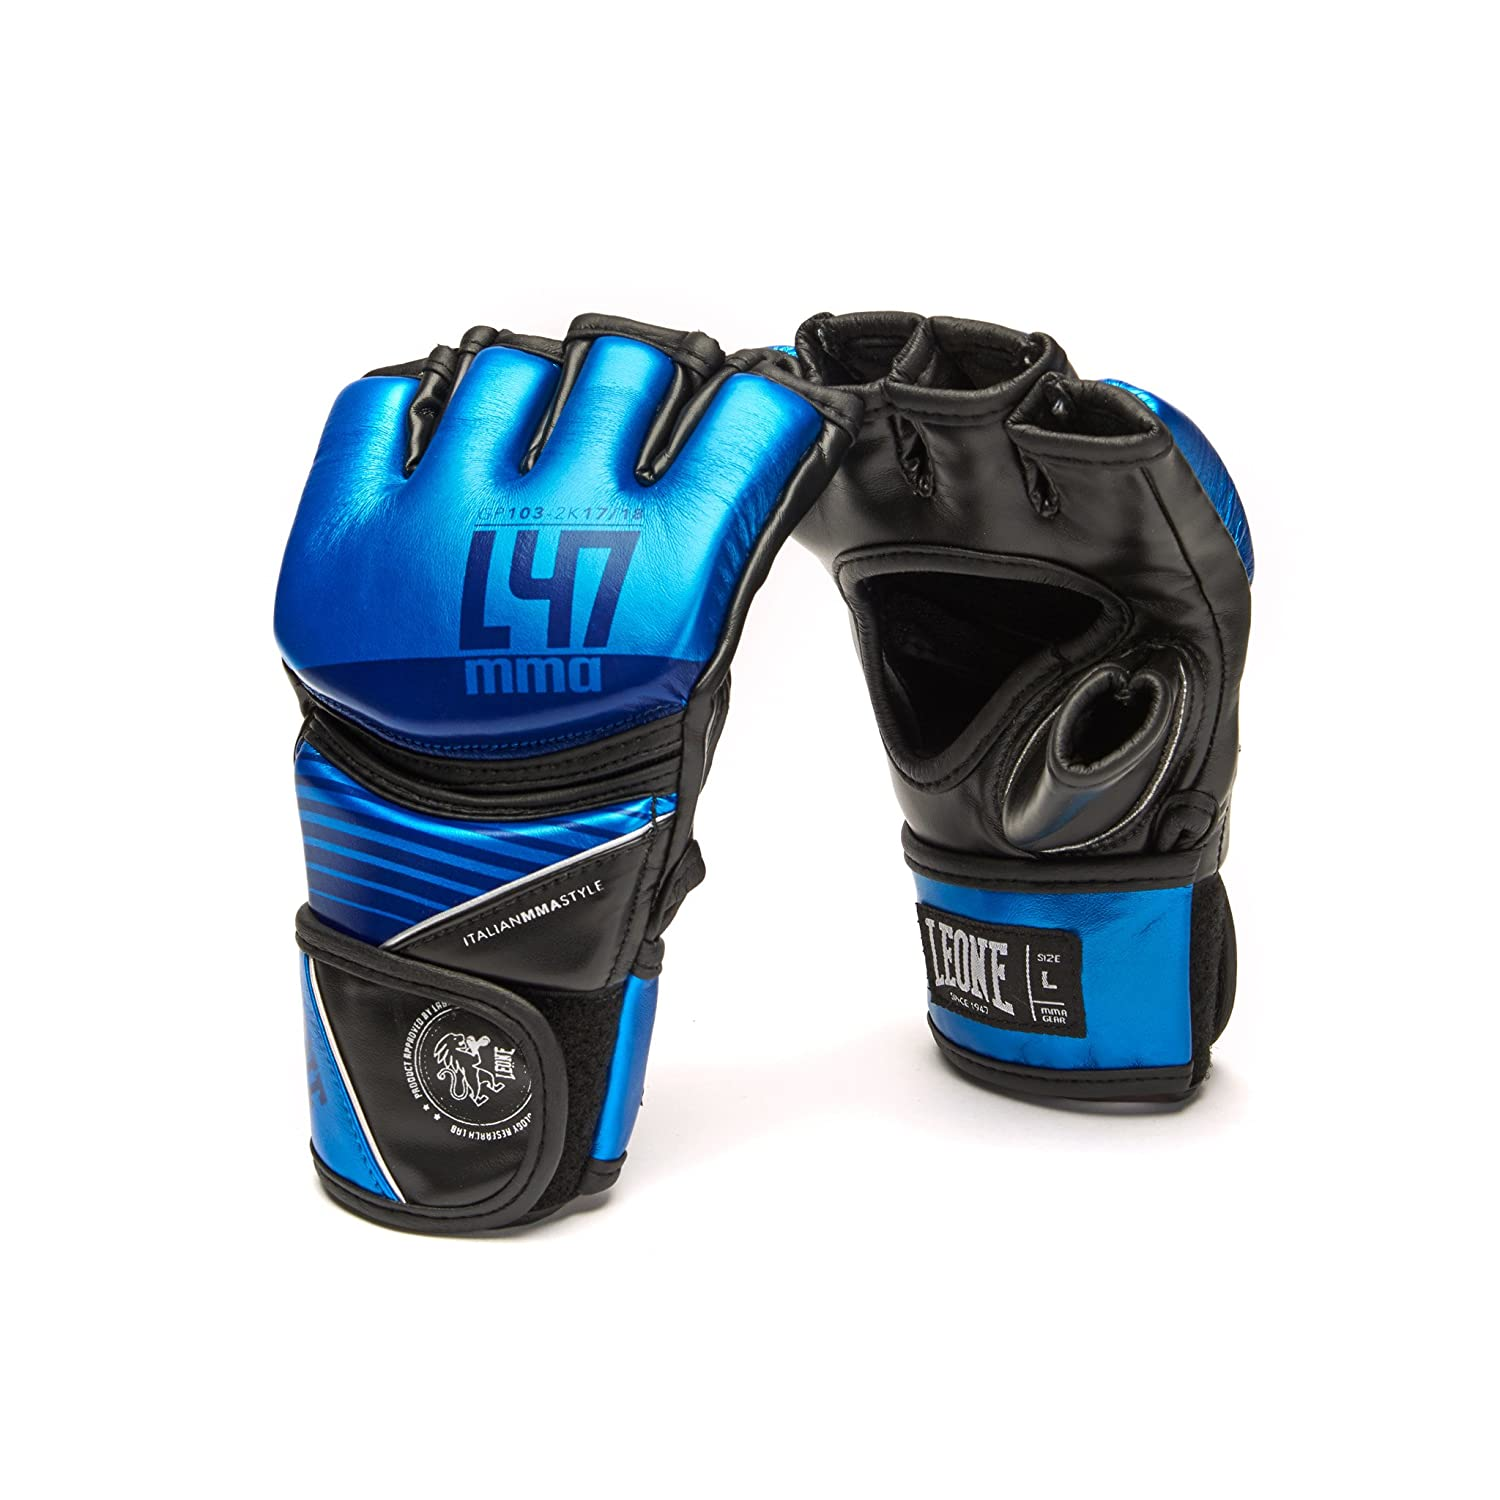 Impact Grappling Gloves Martial Arts Sparring Gloves Punching Bag Cage Fight Gloves UFC Combat Training Gloves Leone 1947 MMA Leather Gloves